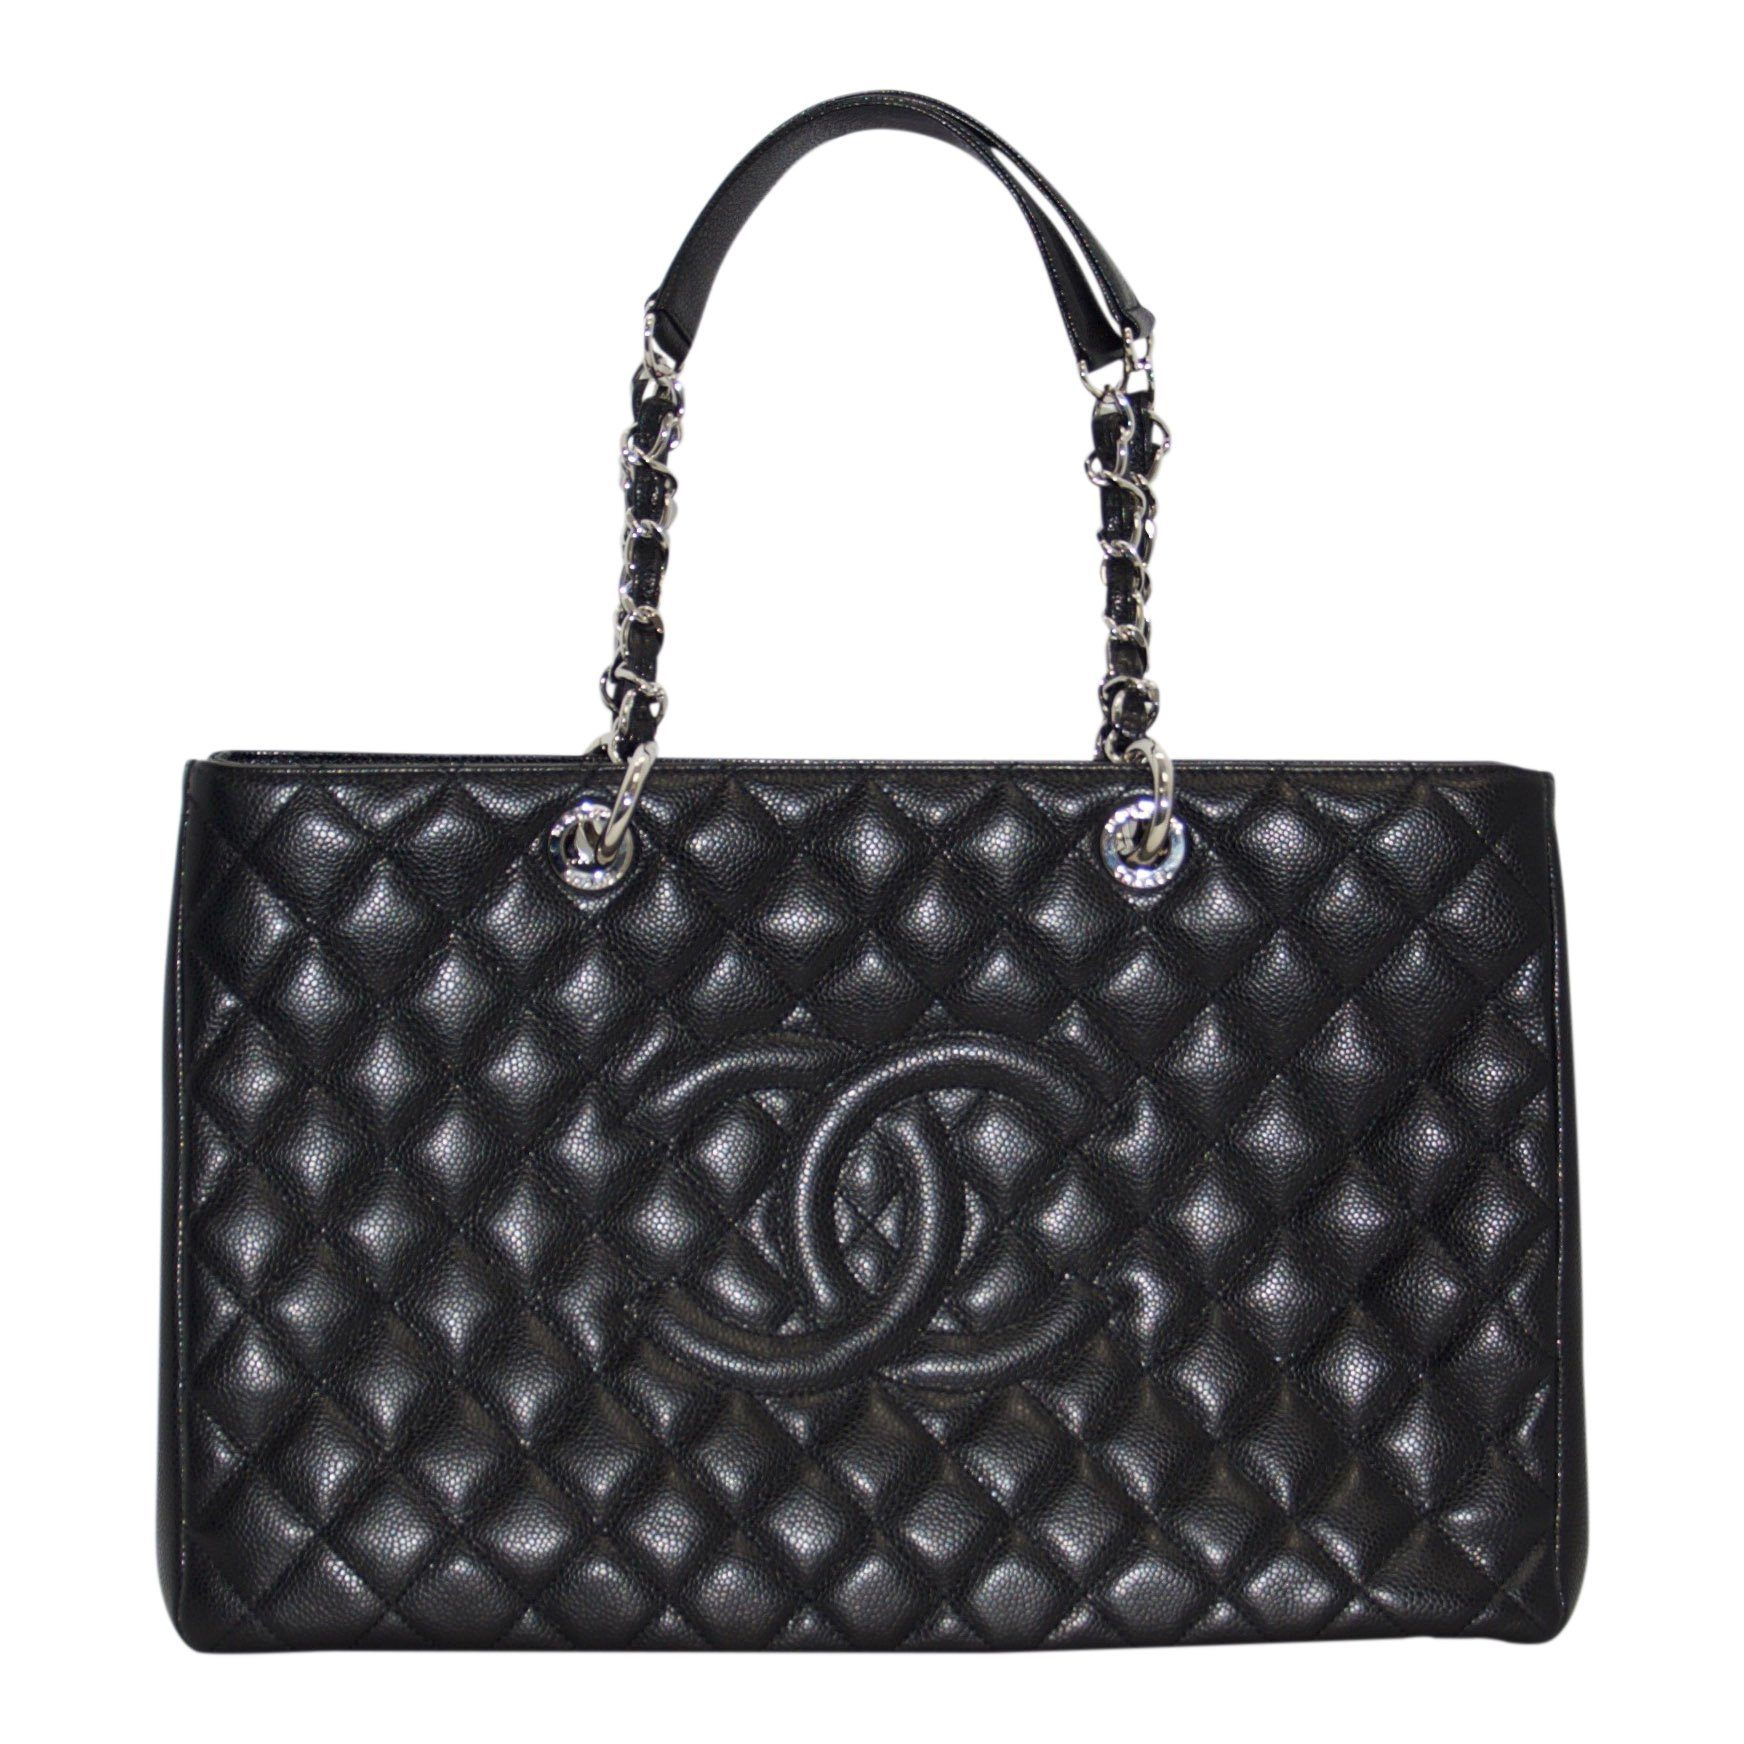 6536d778cfe7 Chanel Black Caviar Leather XL Grand Shopping Tote (GST) Bags Chanel ...